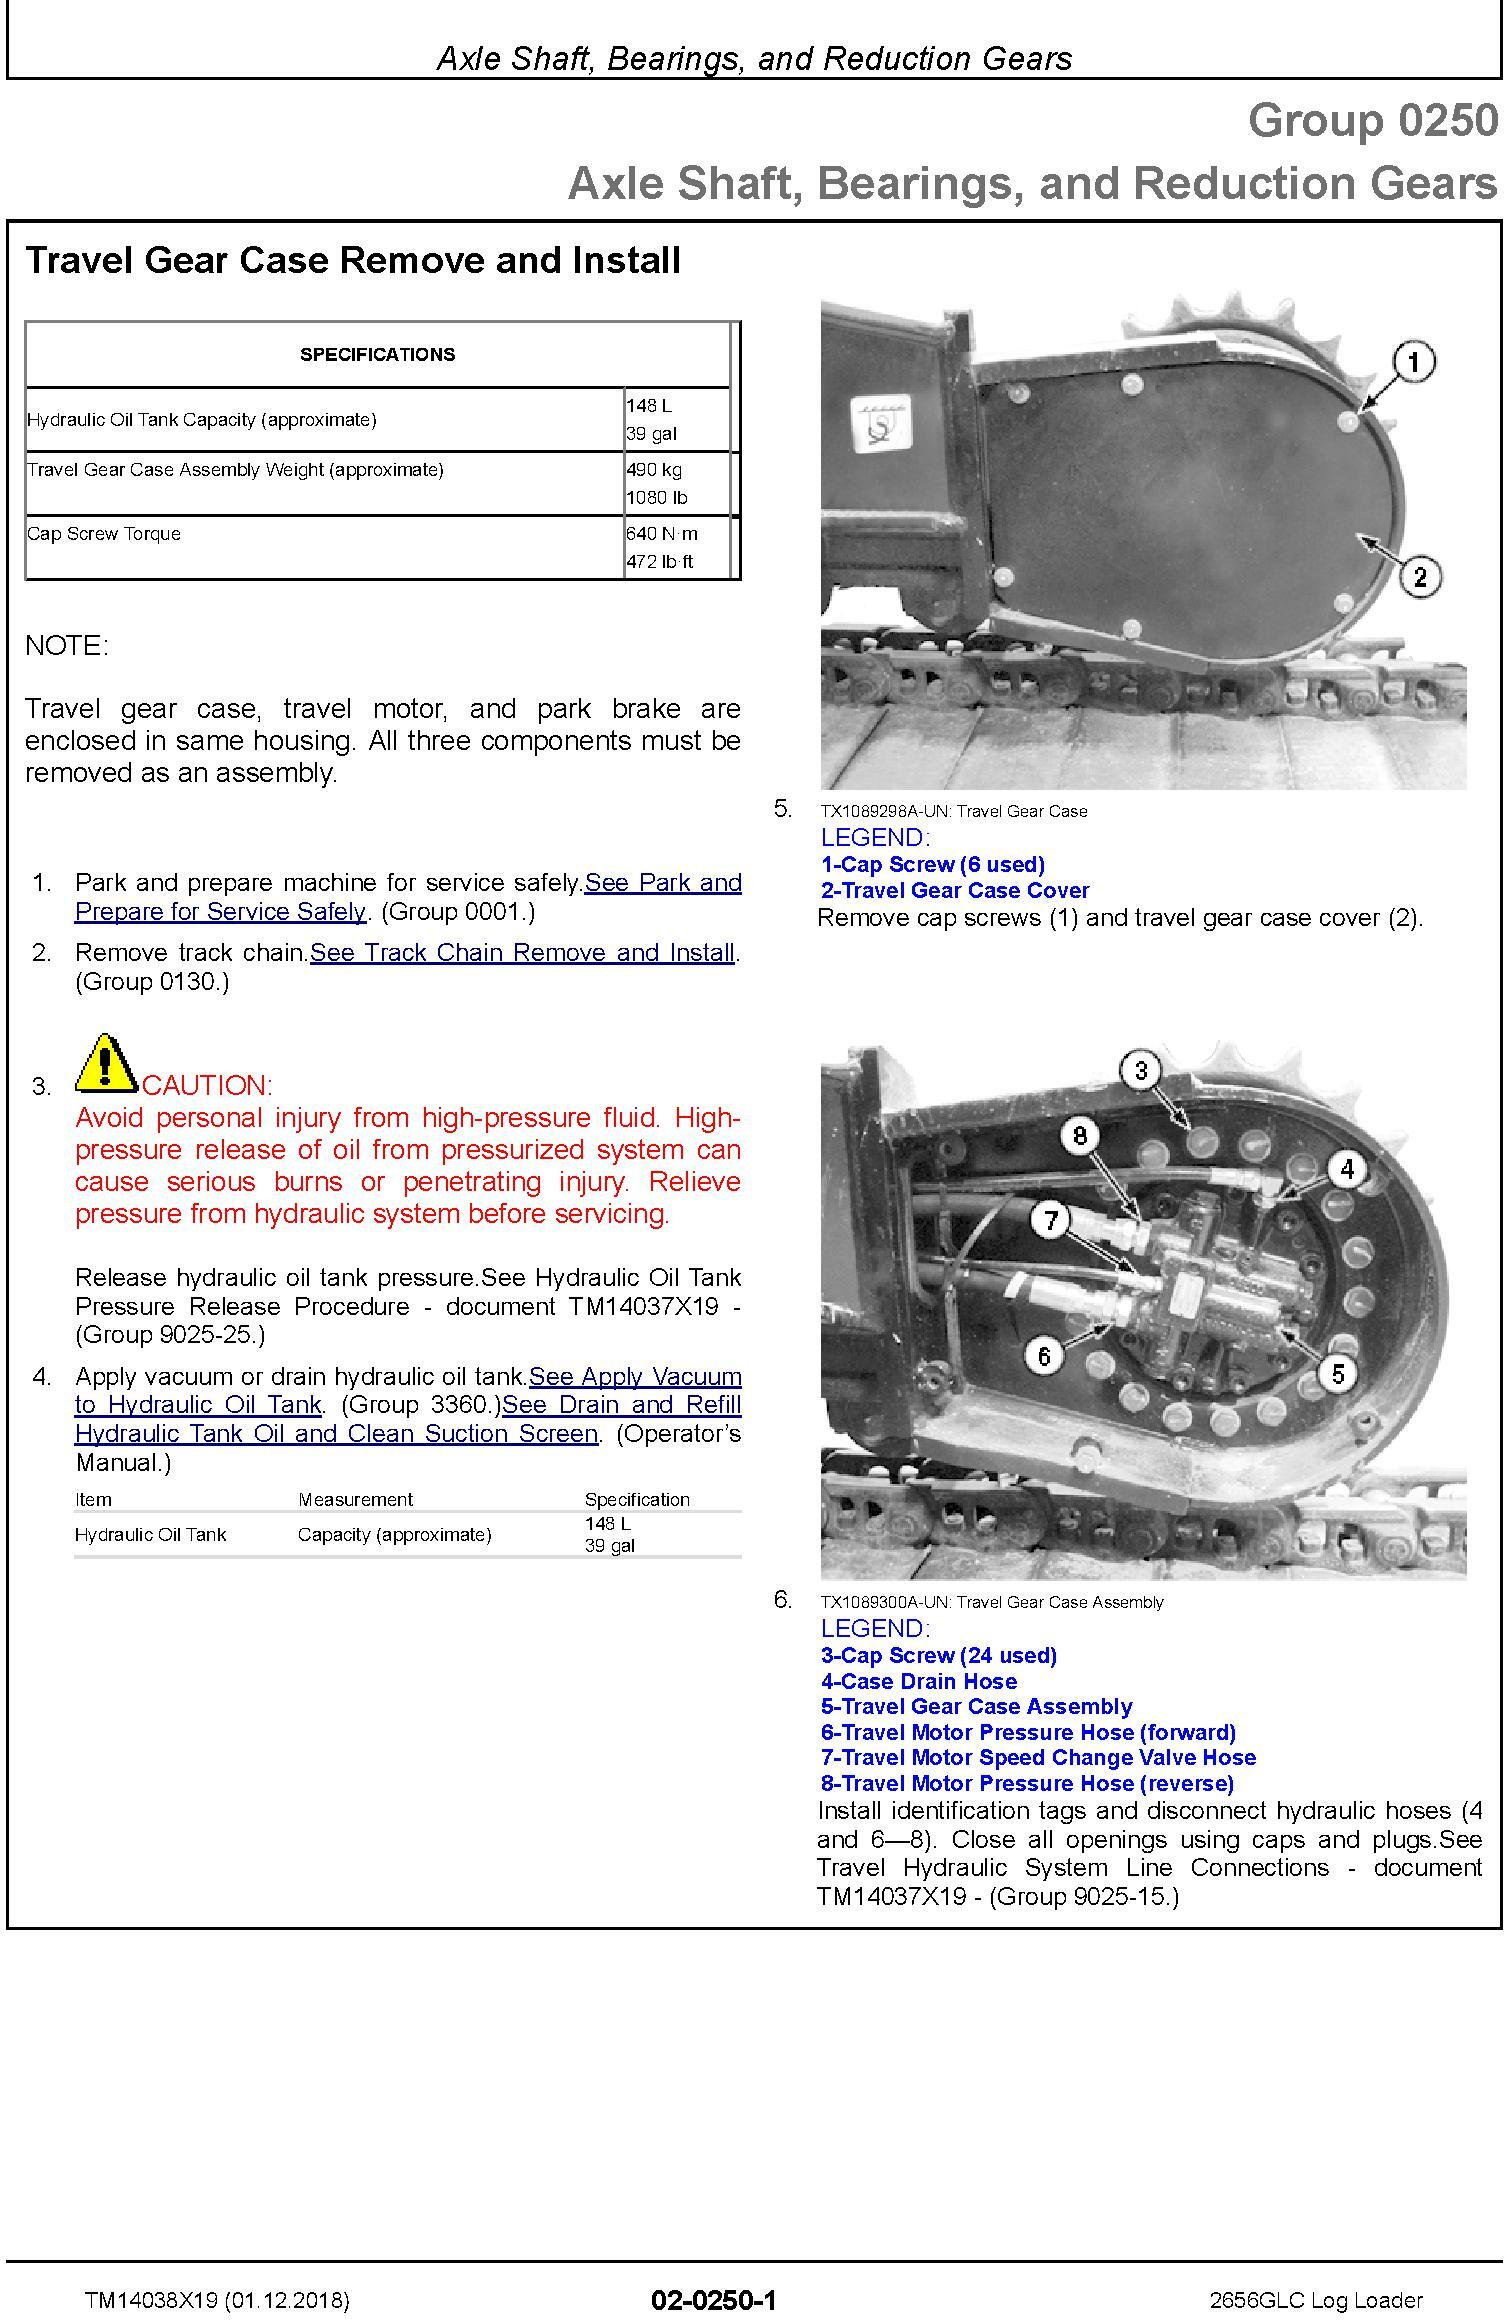 John Deere 2656GLC (SN. F266001-) Log Loader Service Repair Technical Manual (TM14038X19) - 2